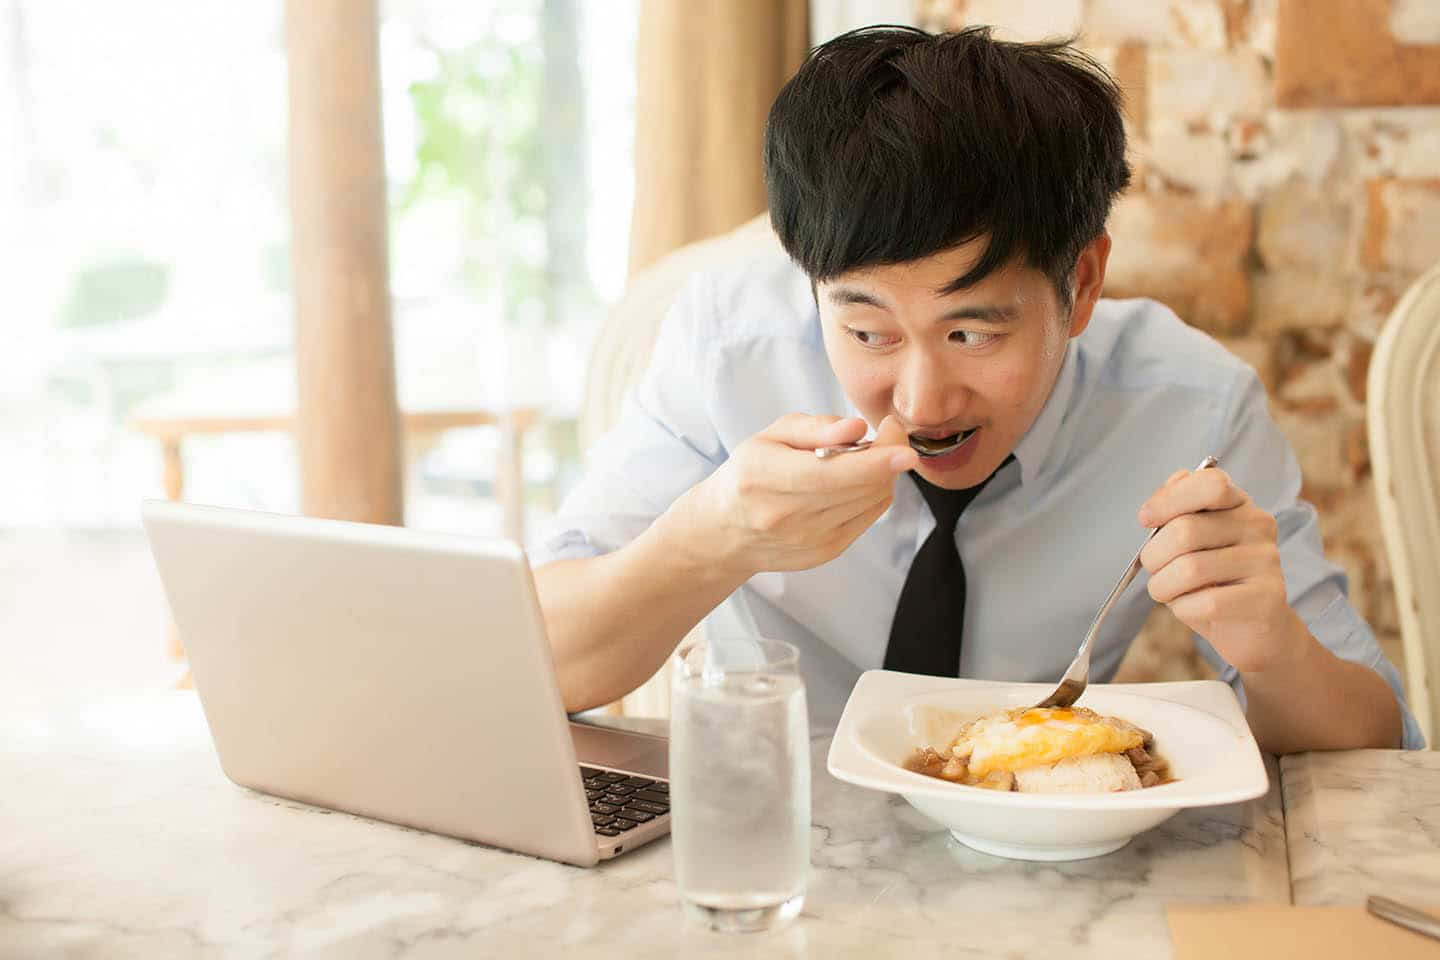 A man eating food while looking at a computer